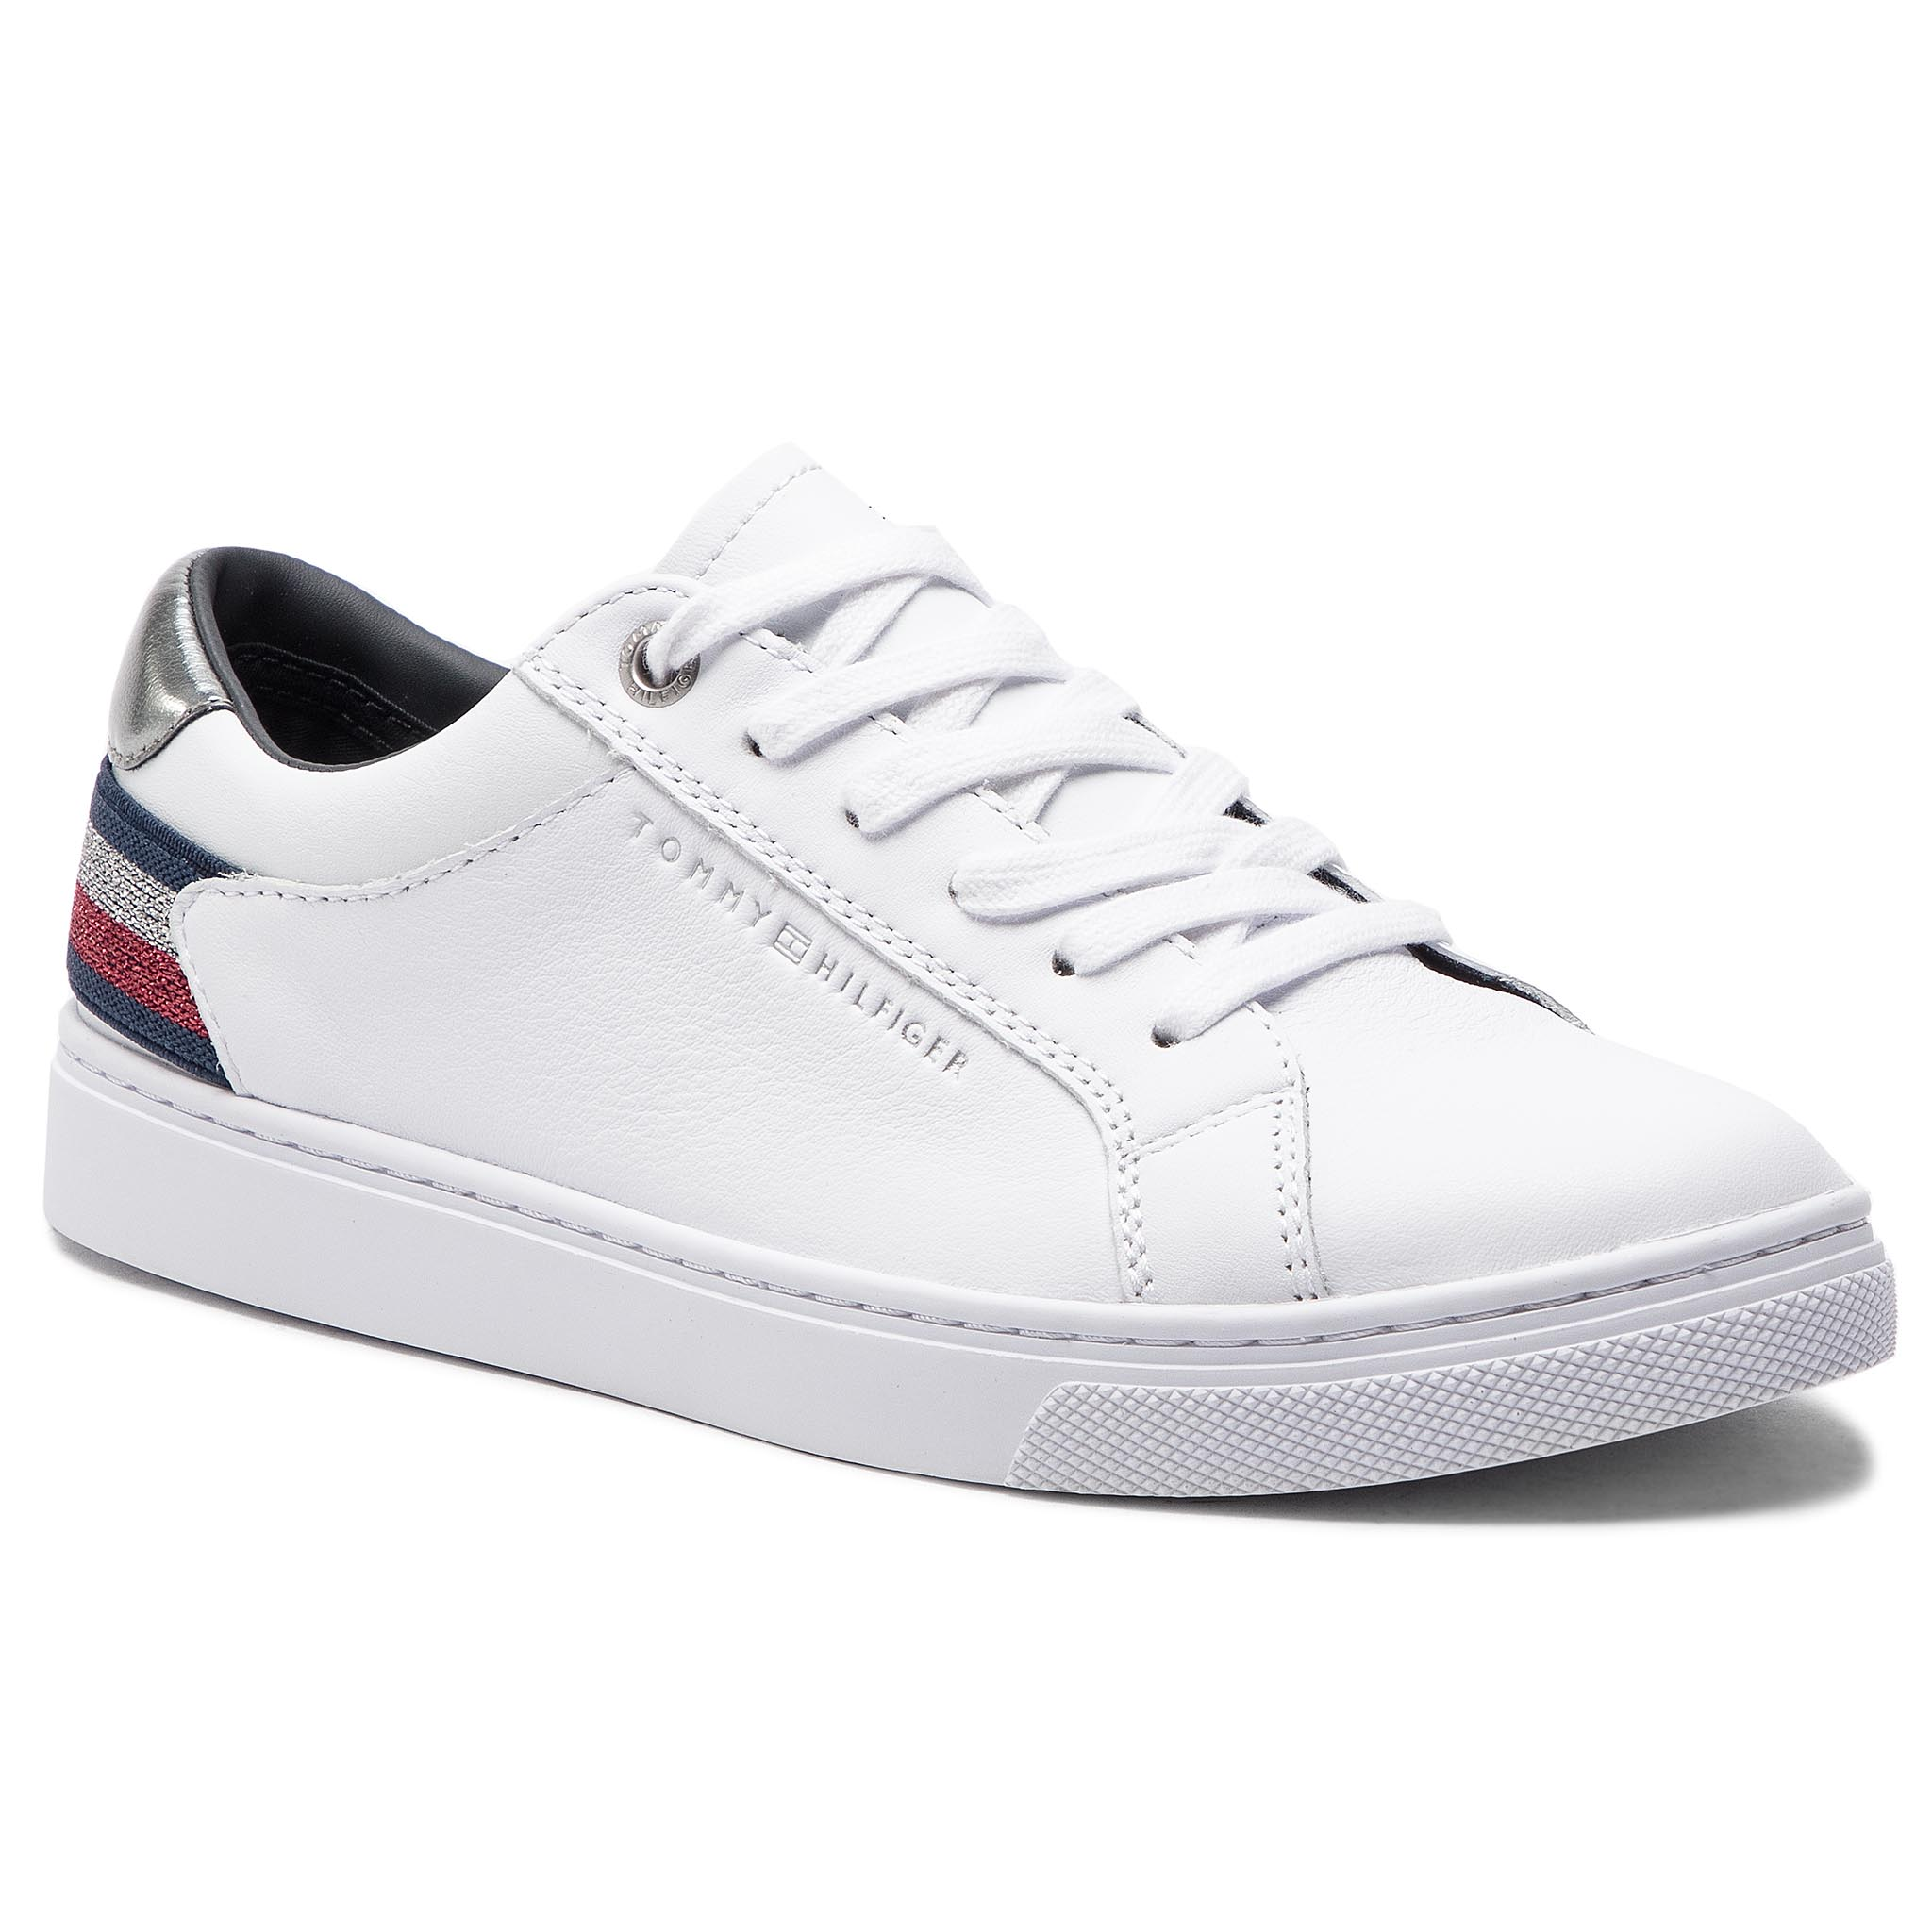 4b269c817cb4e Sneakers TOMMY HILFIGER - Essential Sneaker FW0FW03710 White 100 ...